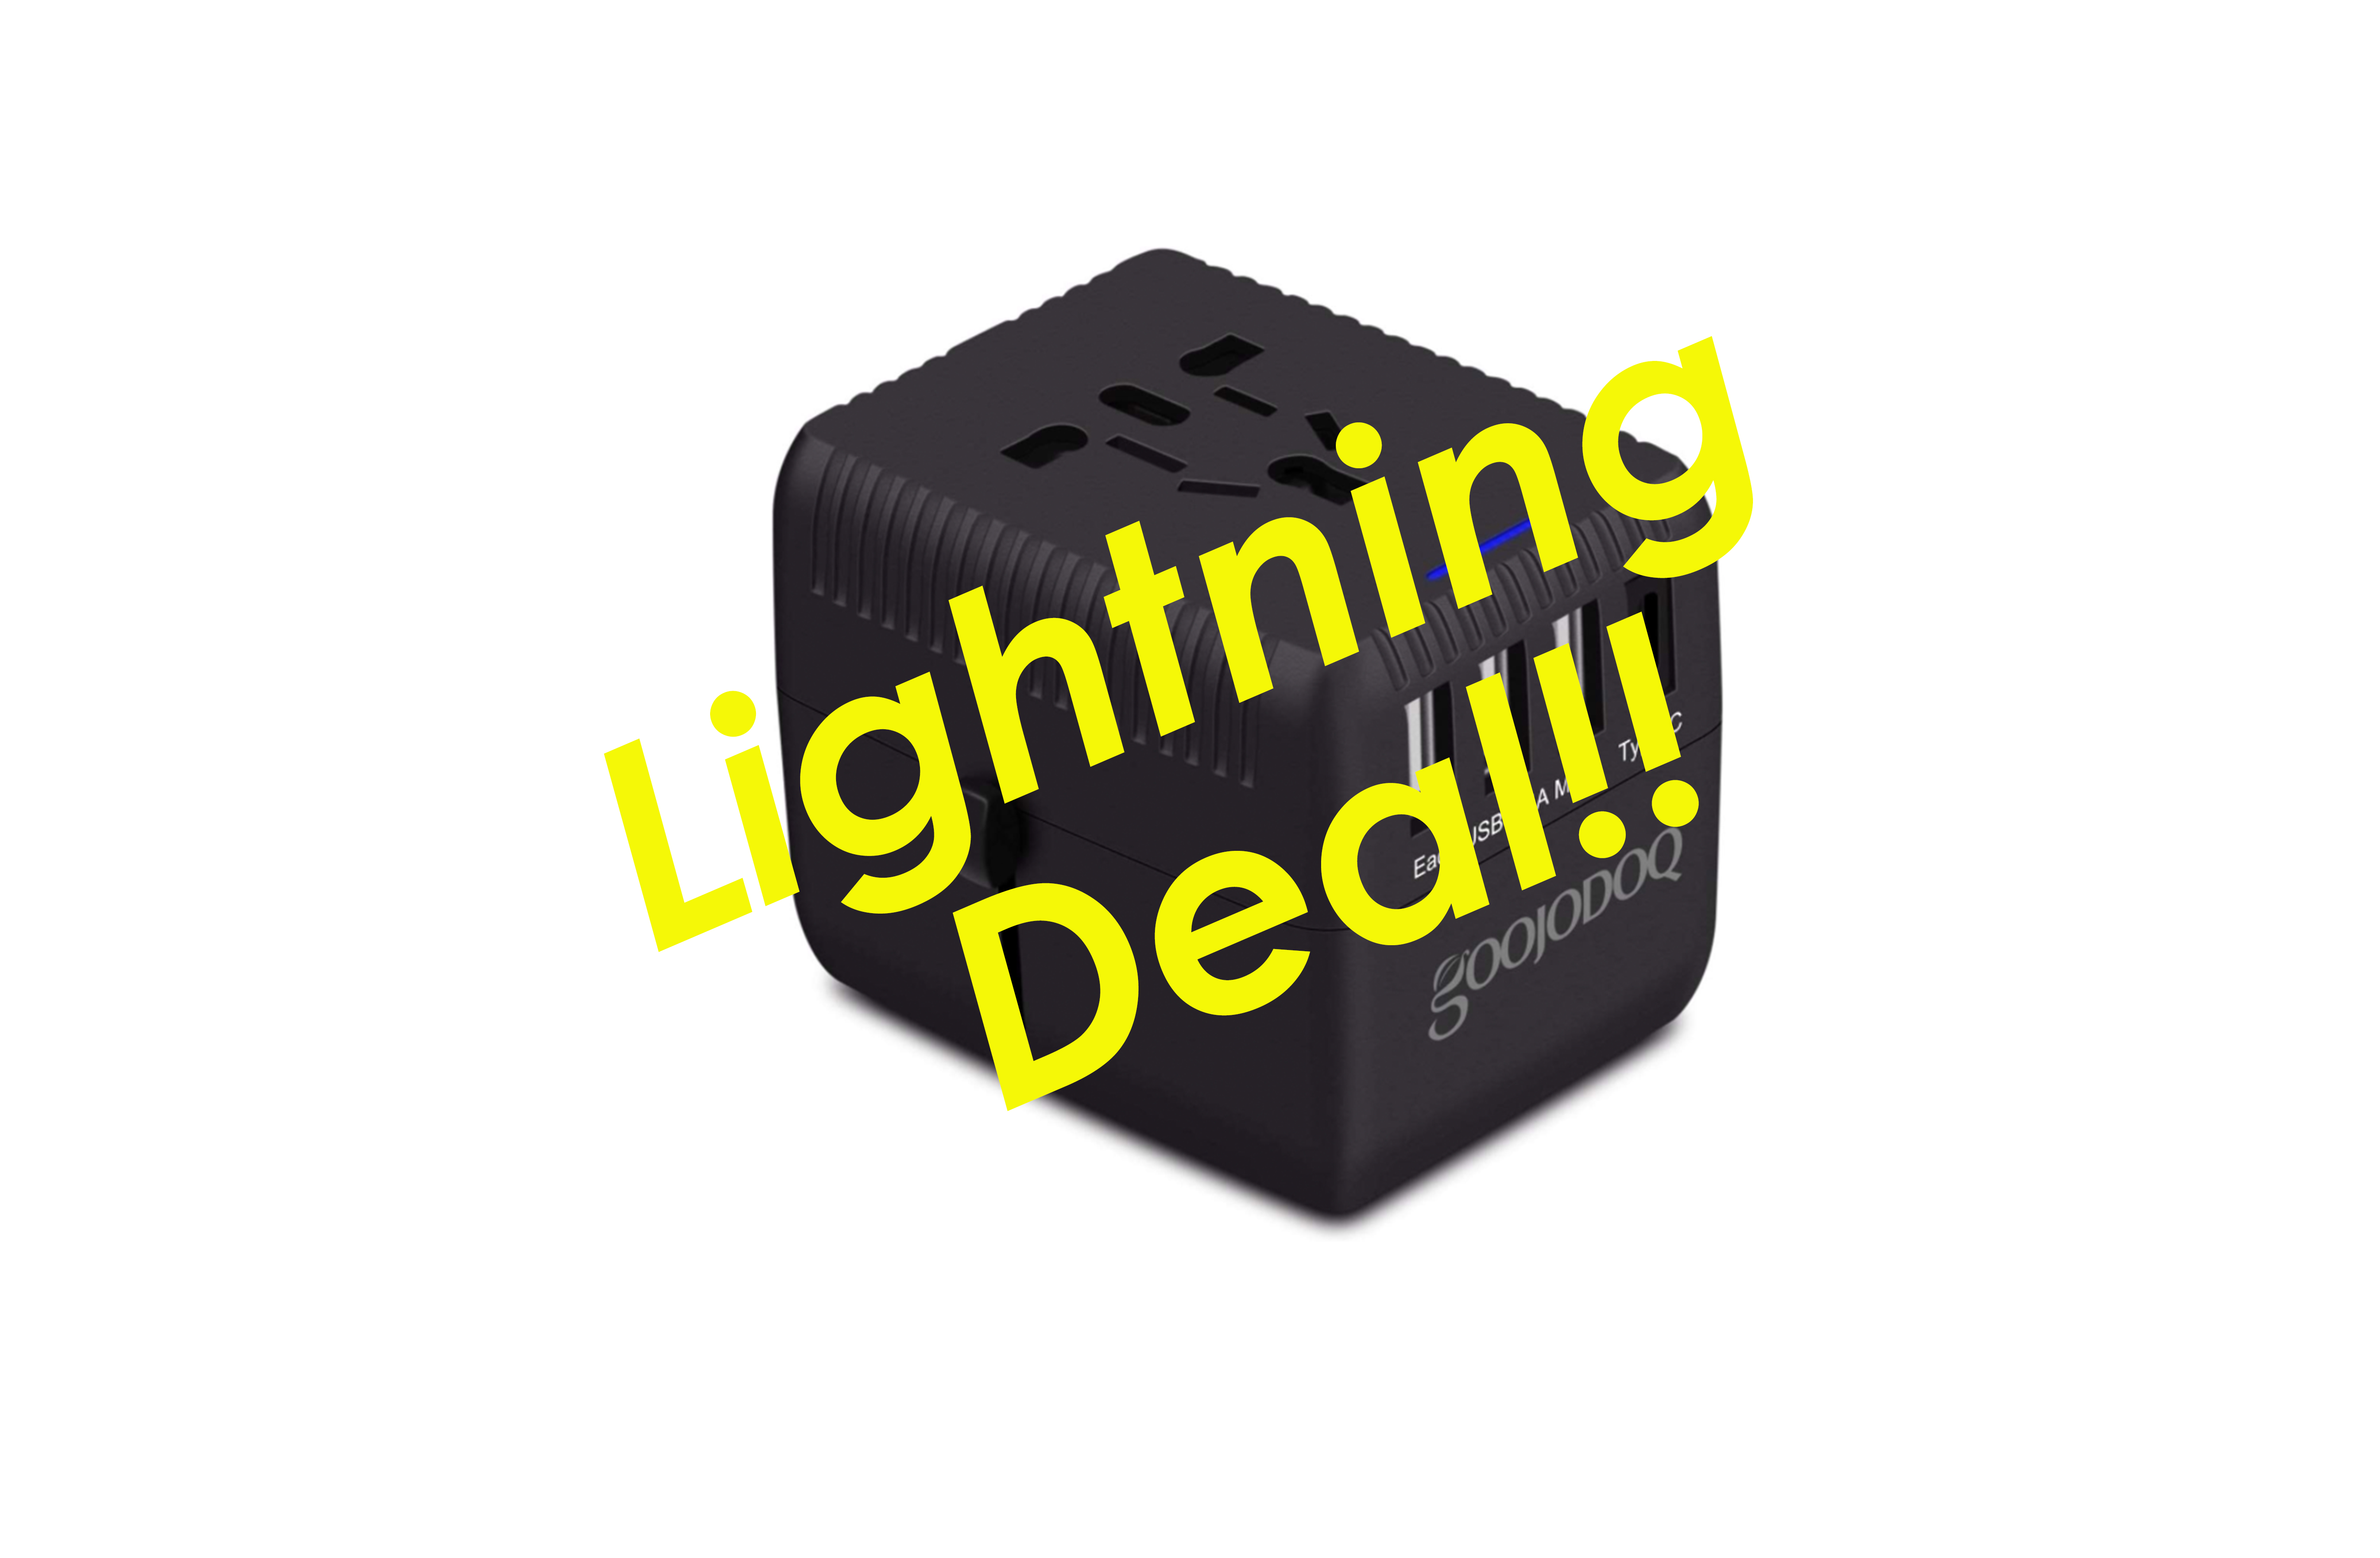 Travel Adapter Amazon Expired Amazon Lightning Deal Hurry Travel Adapter With